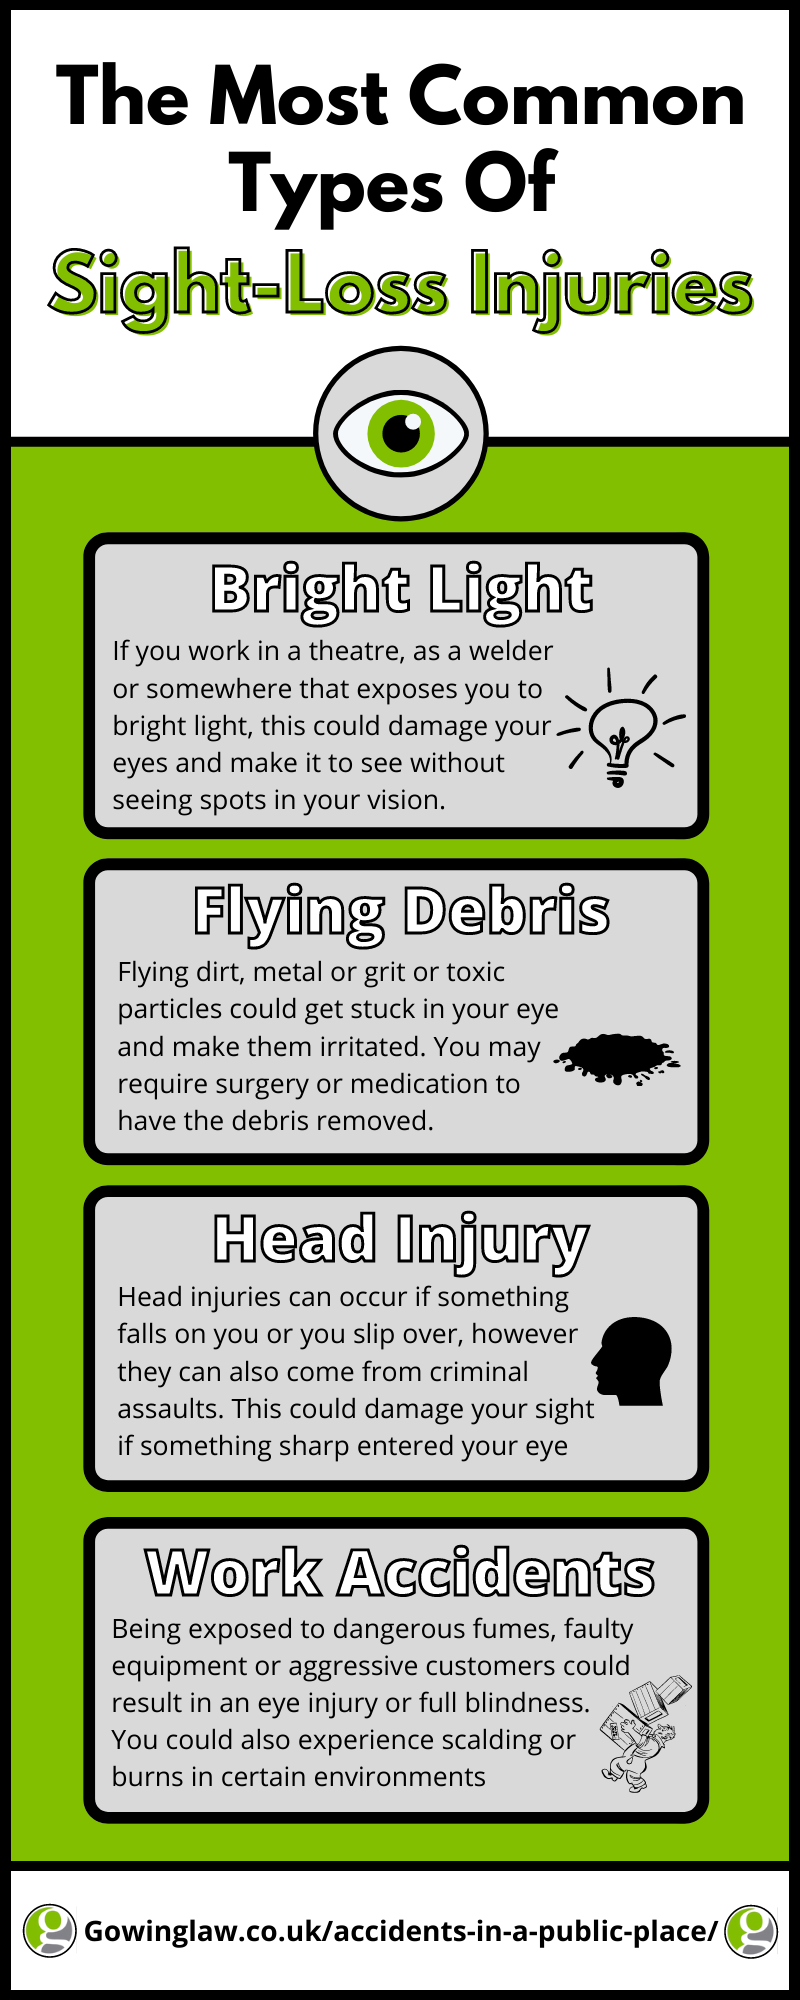 Sight loss injuries infographic